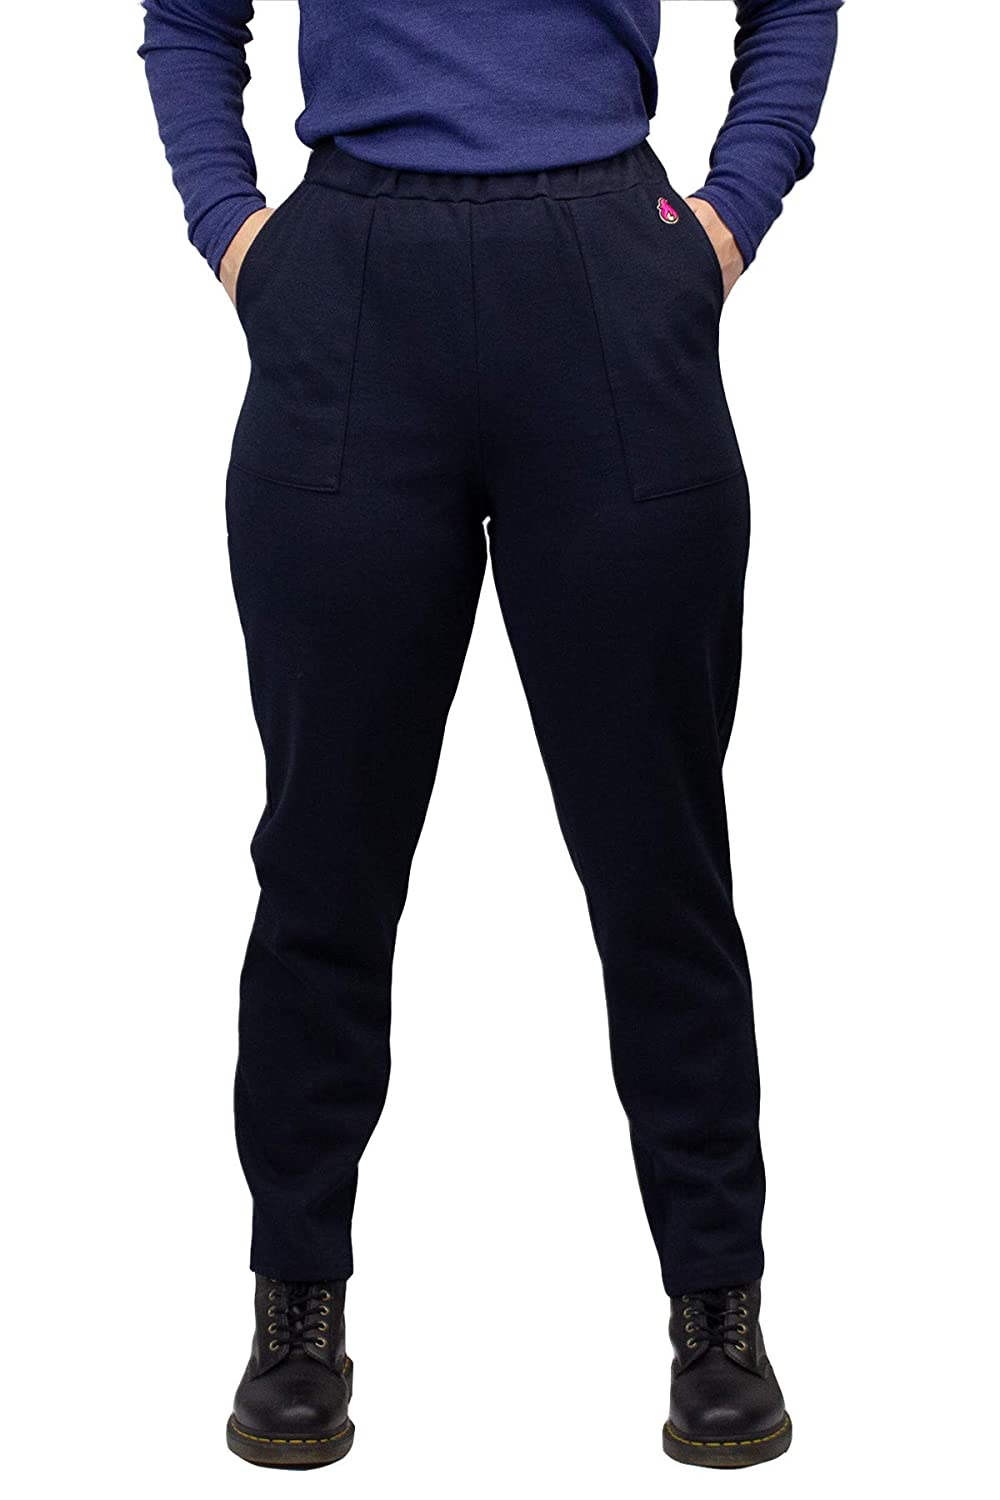 Extra Small HauteWork PNTF8KPW-XS Workday Warrior FR Pant for Women Navy